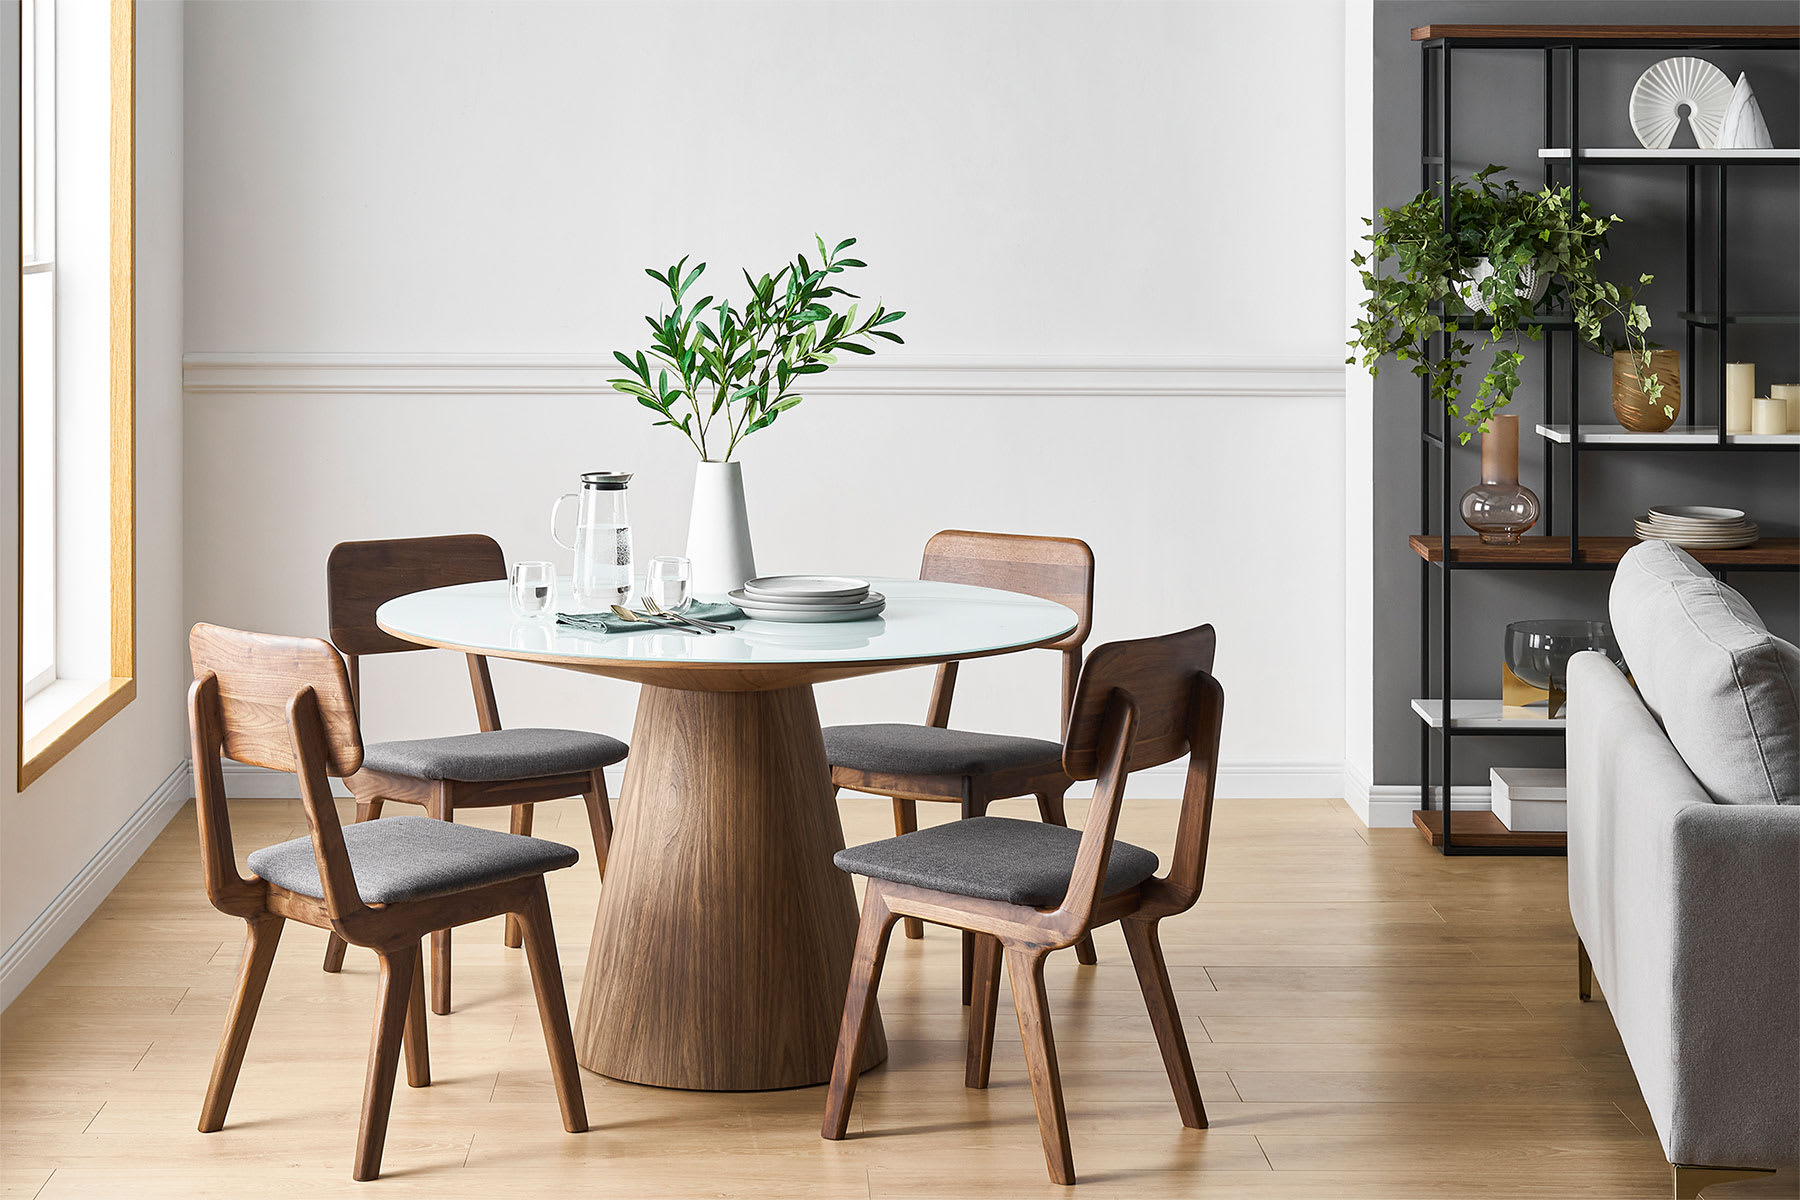 Round dining table, chairs and plant